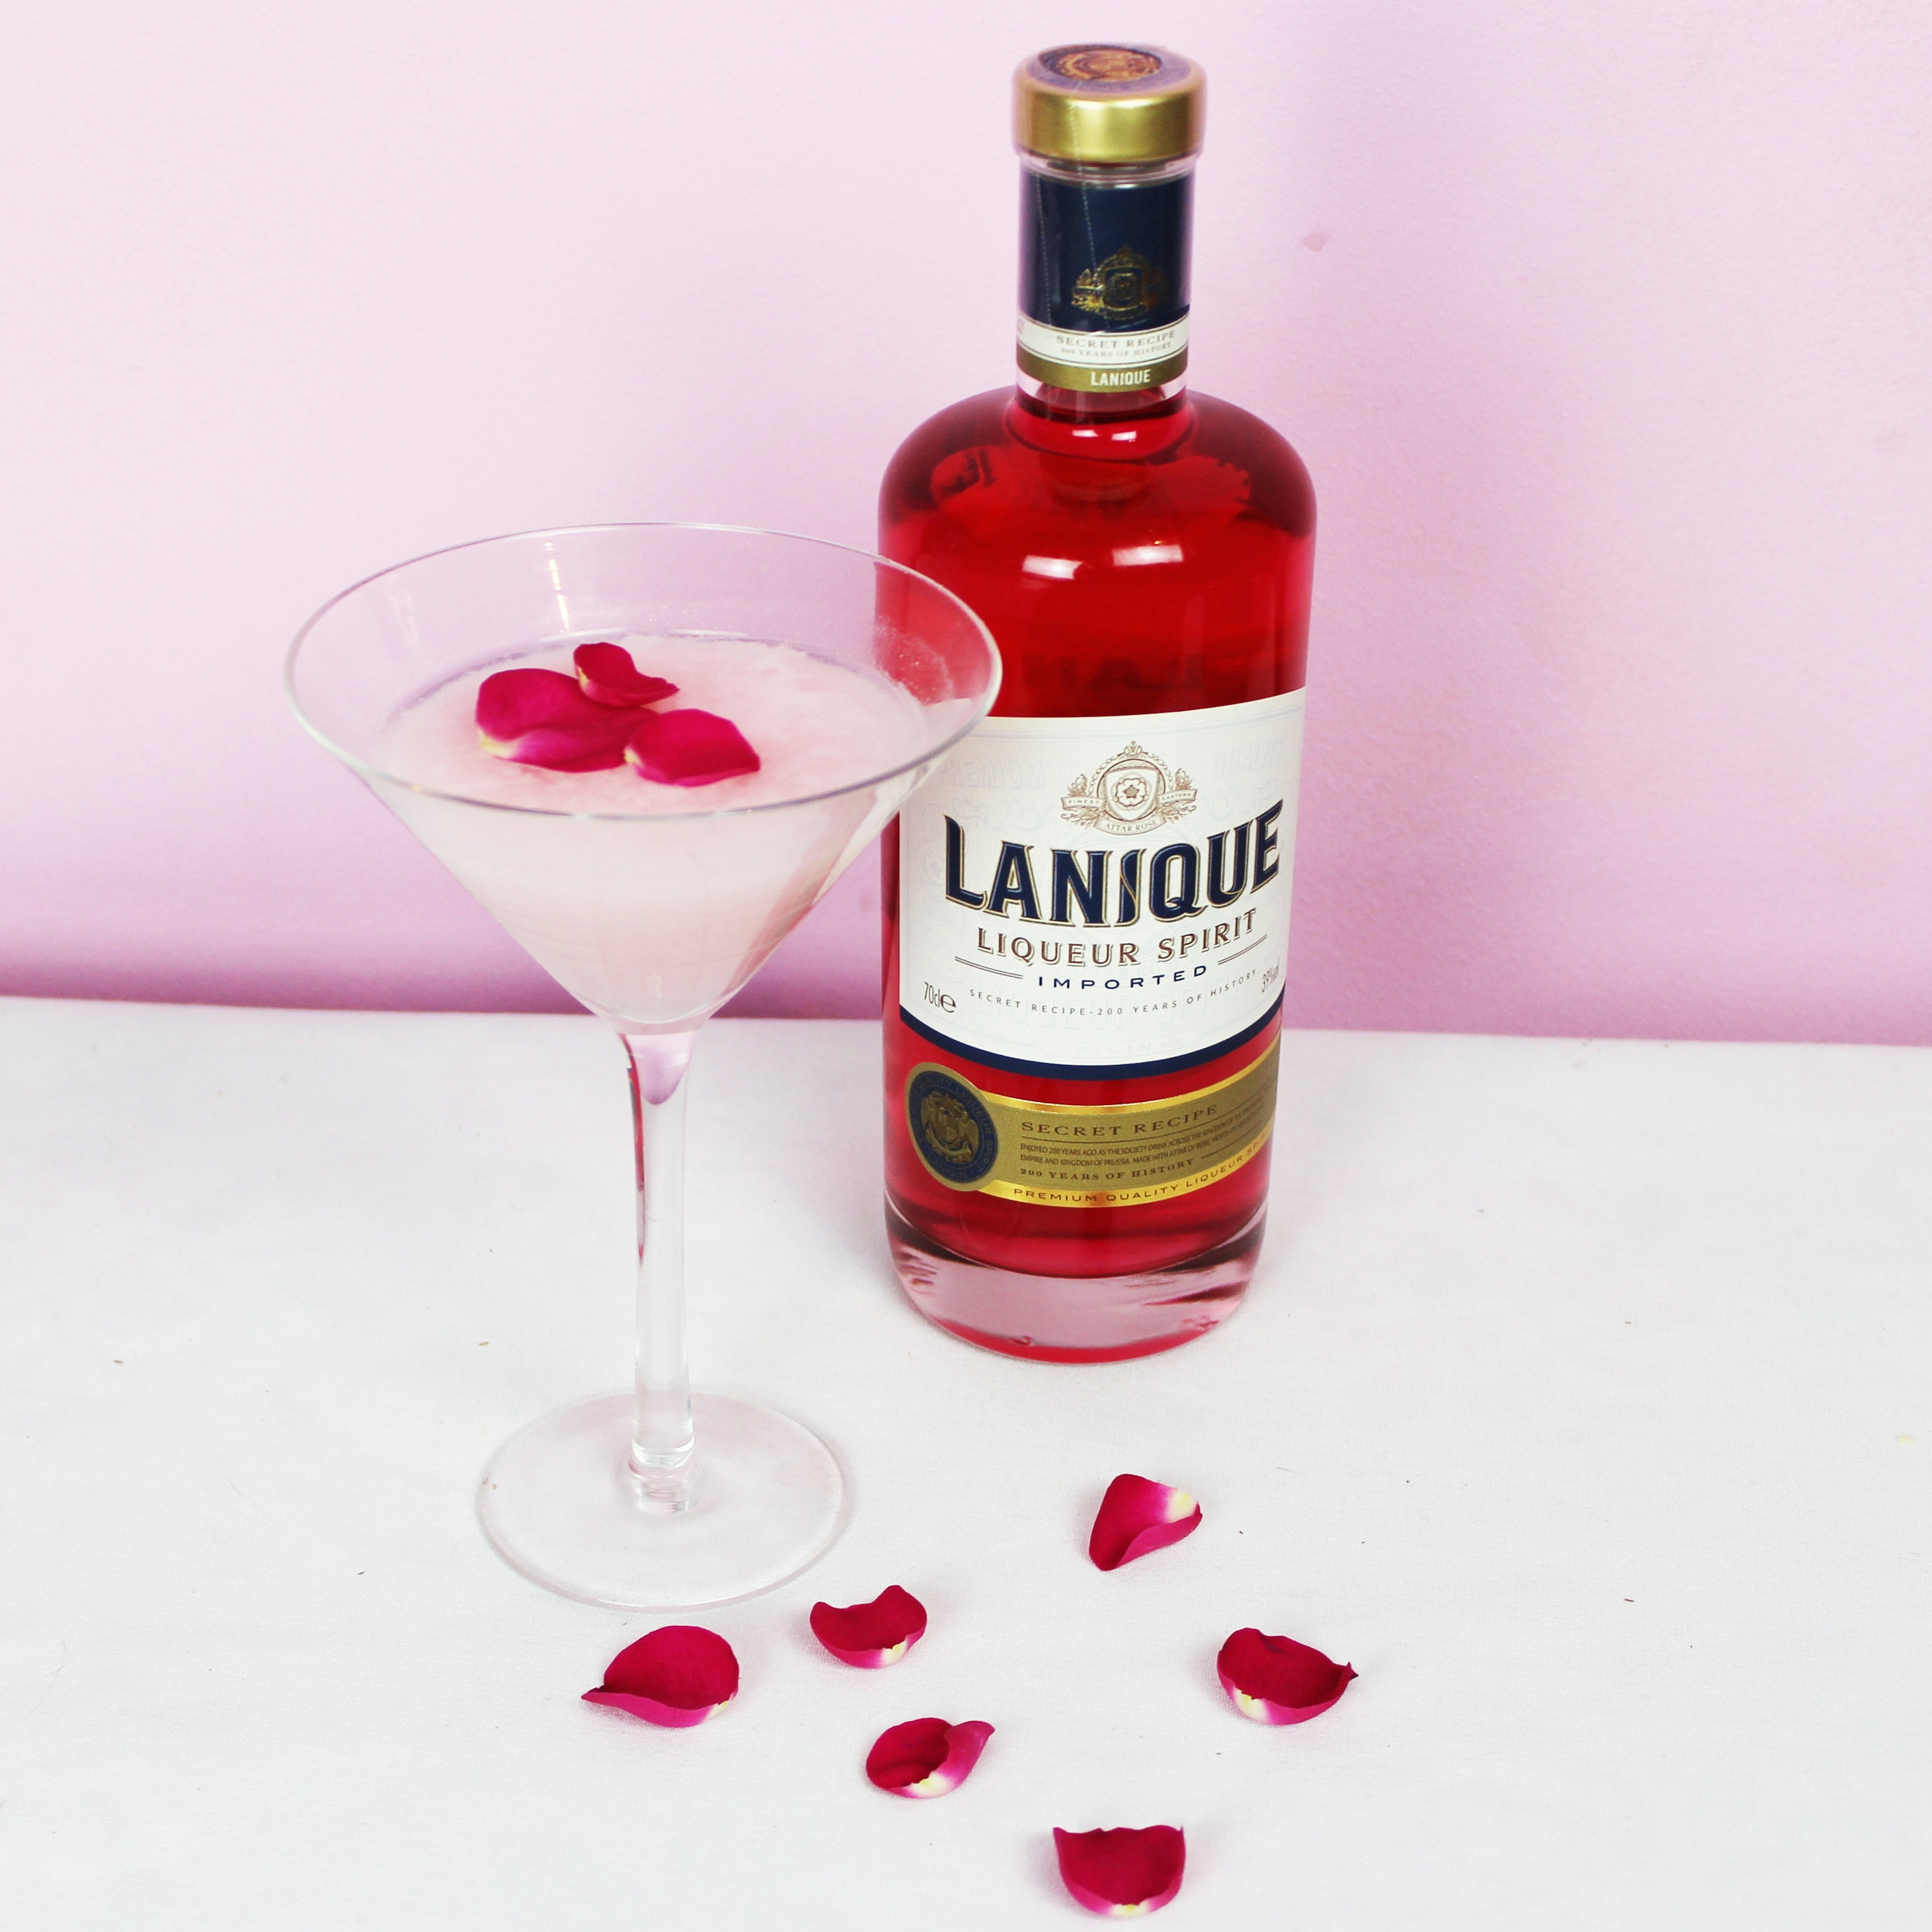 Guests indulged in Luxury Lanique cocktails before delving into the Lulu Guinness Kissing Booth, which was exclusively designed for the Broken Hearts & Promises event curated by Meredith O'Shaughnessy.